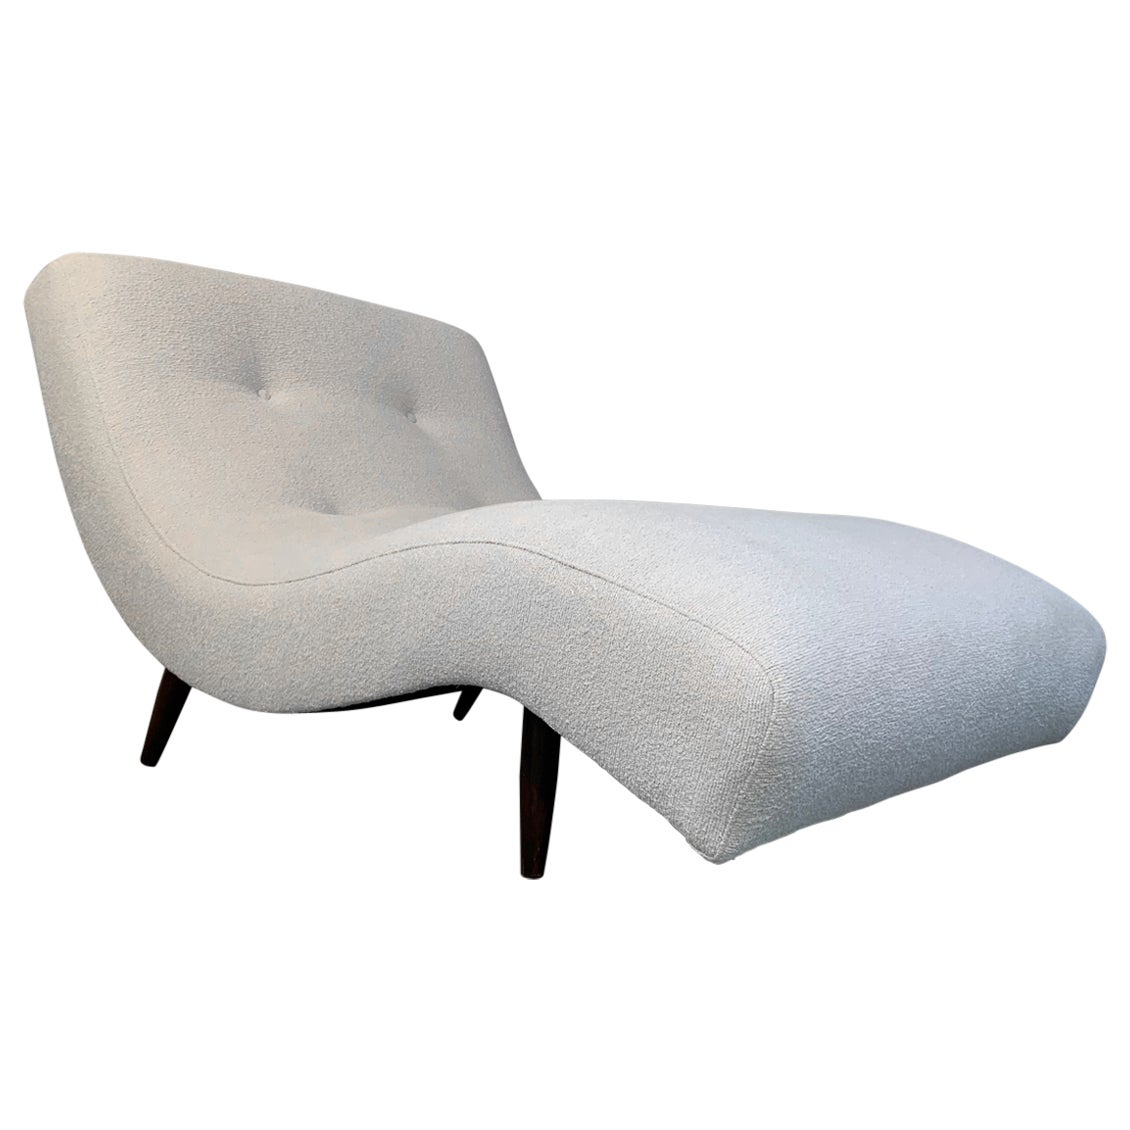 Adrian Pearsall for Craft Associates Wave Chaise in Fresh Italian Boucle